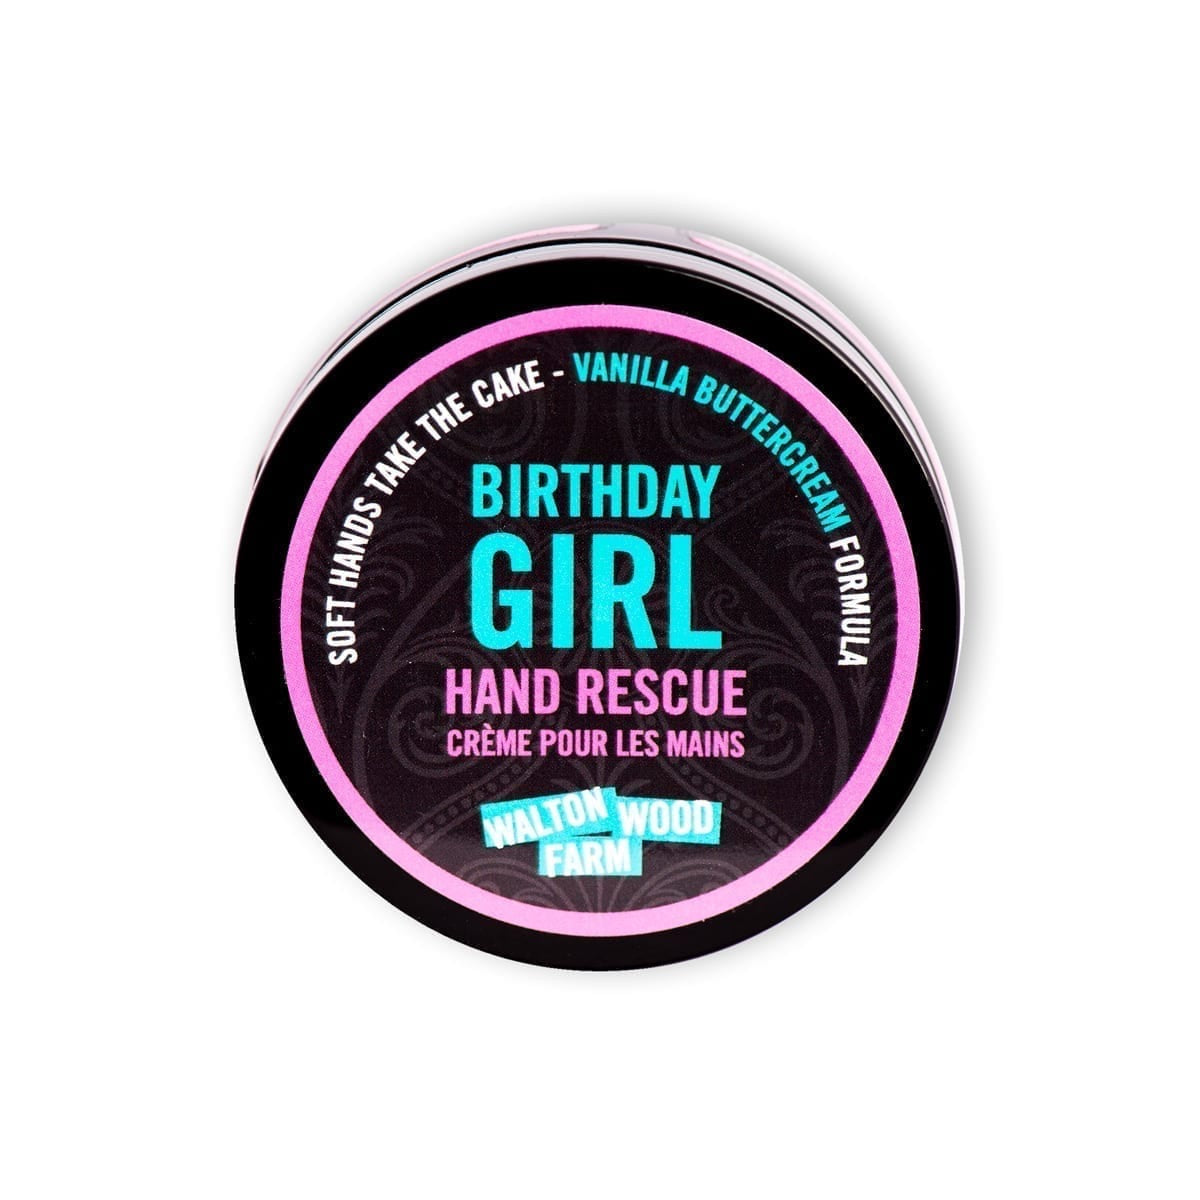 Birthday Girl Lotion 4 oz